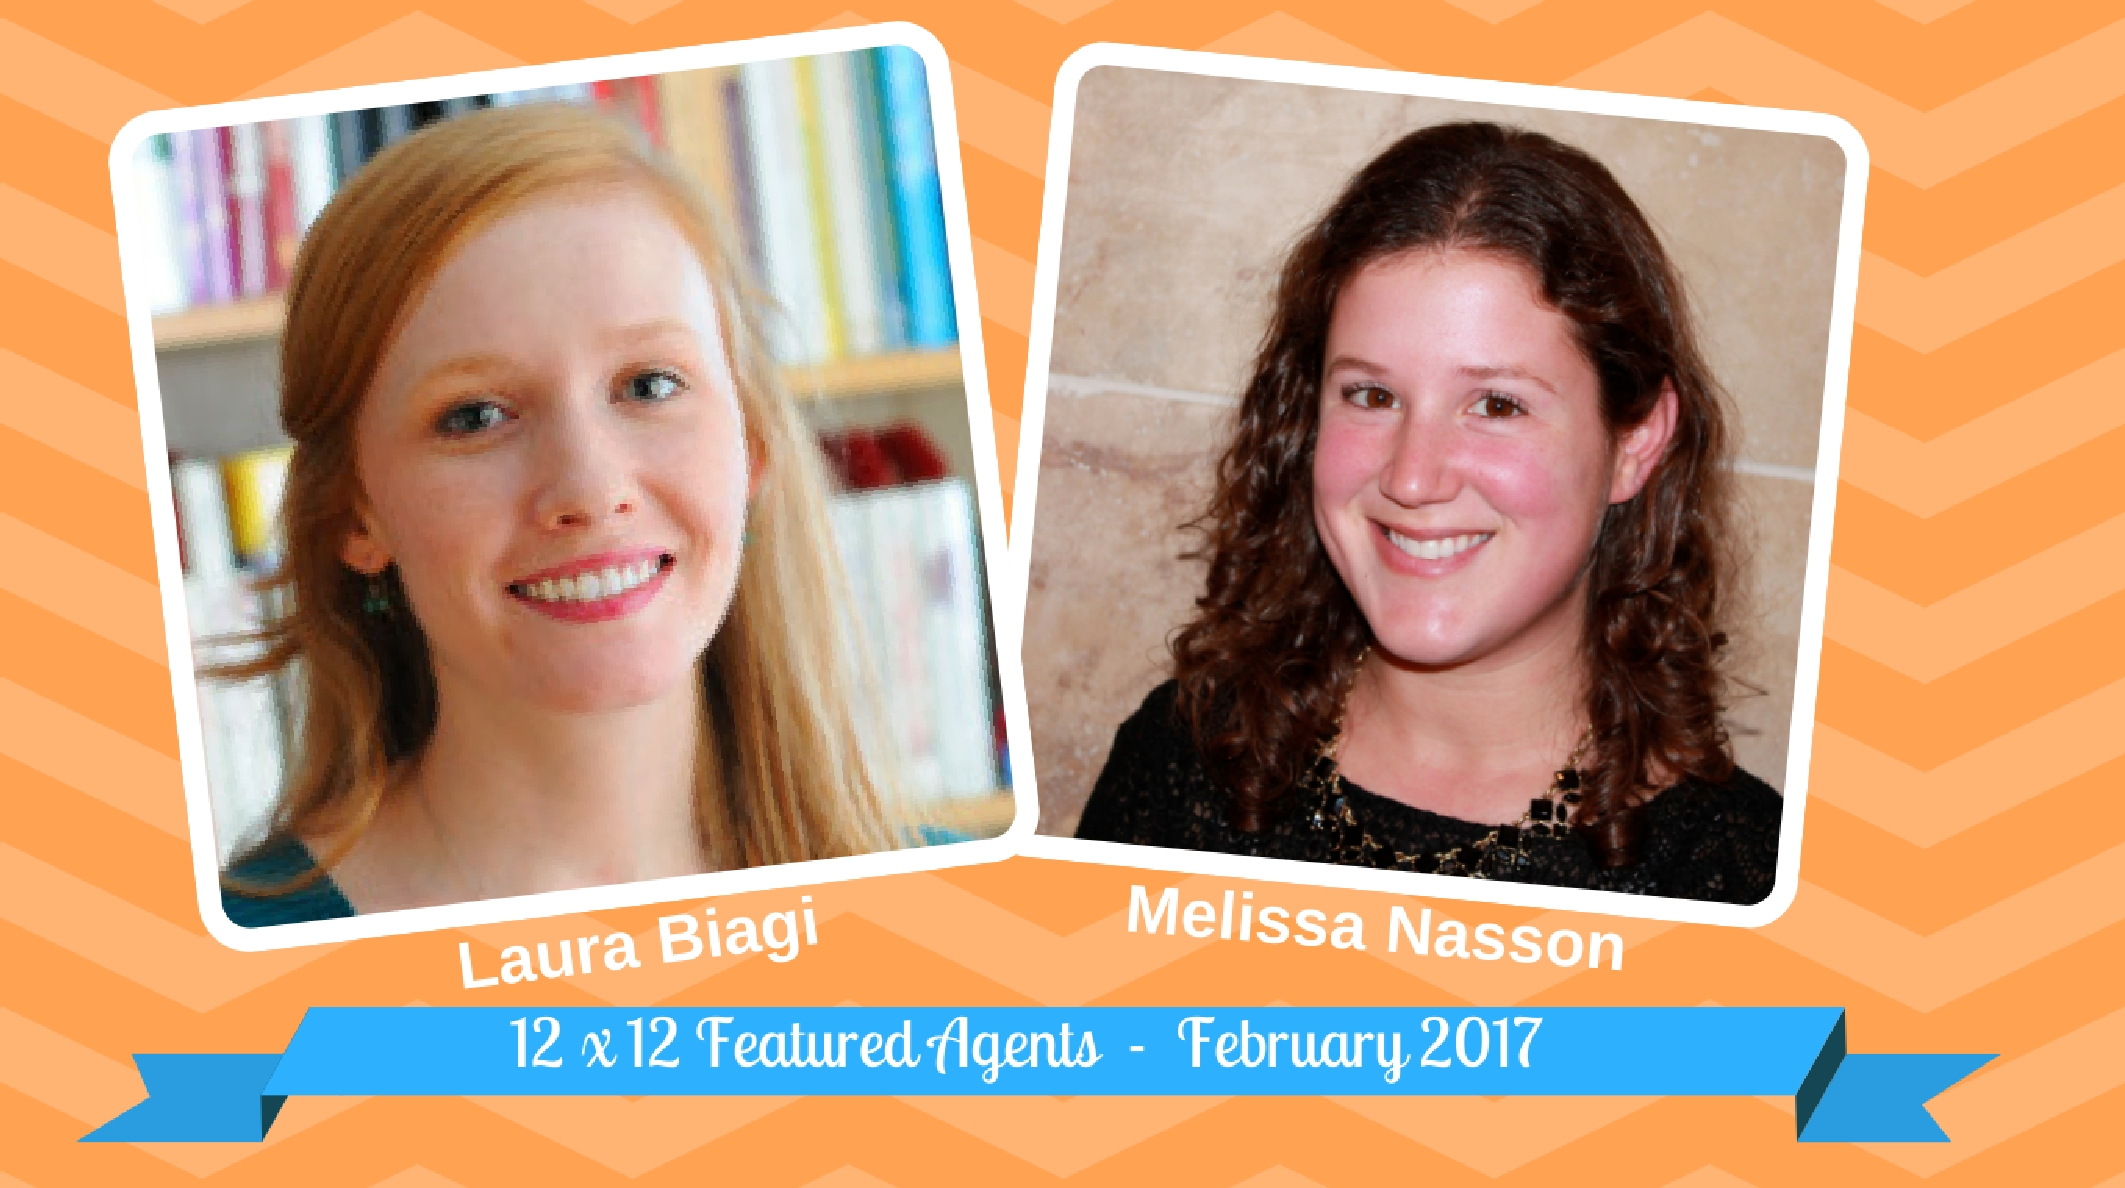 Laura Biagi & Melissa Nasson – 12 X 12 Featured Agents March 2017